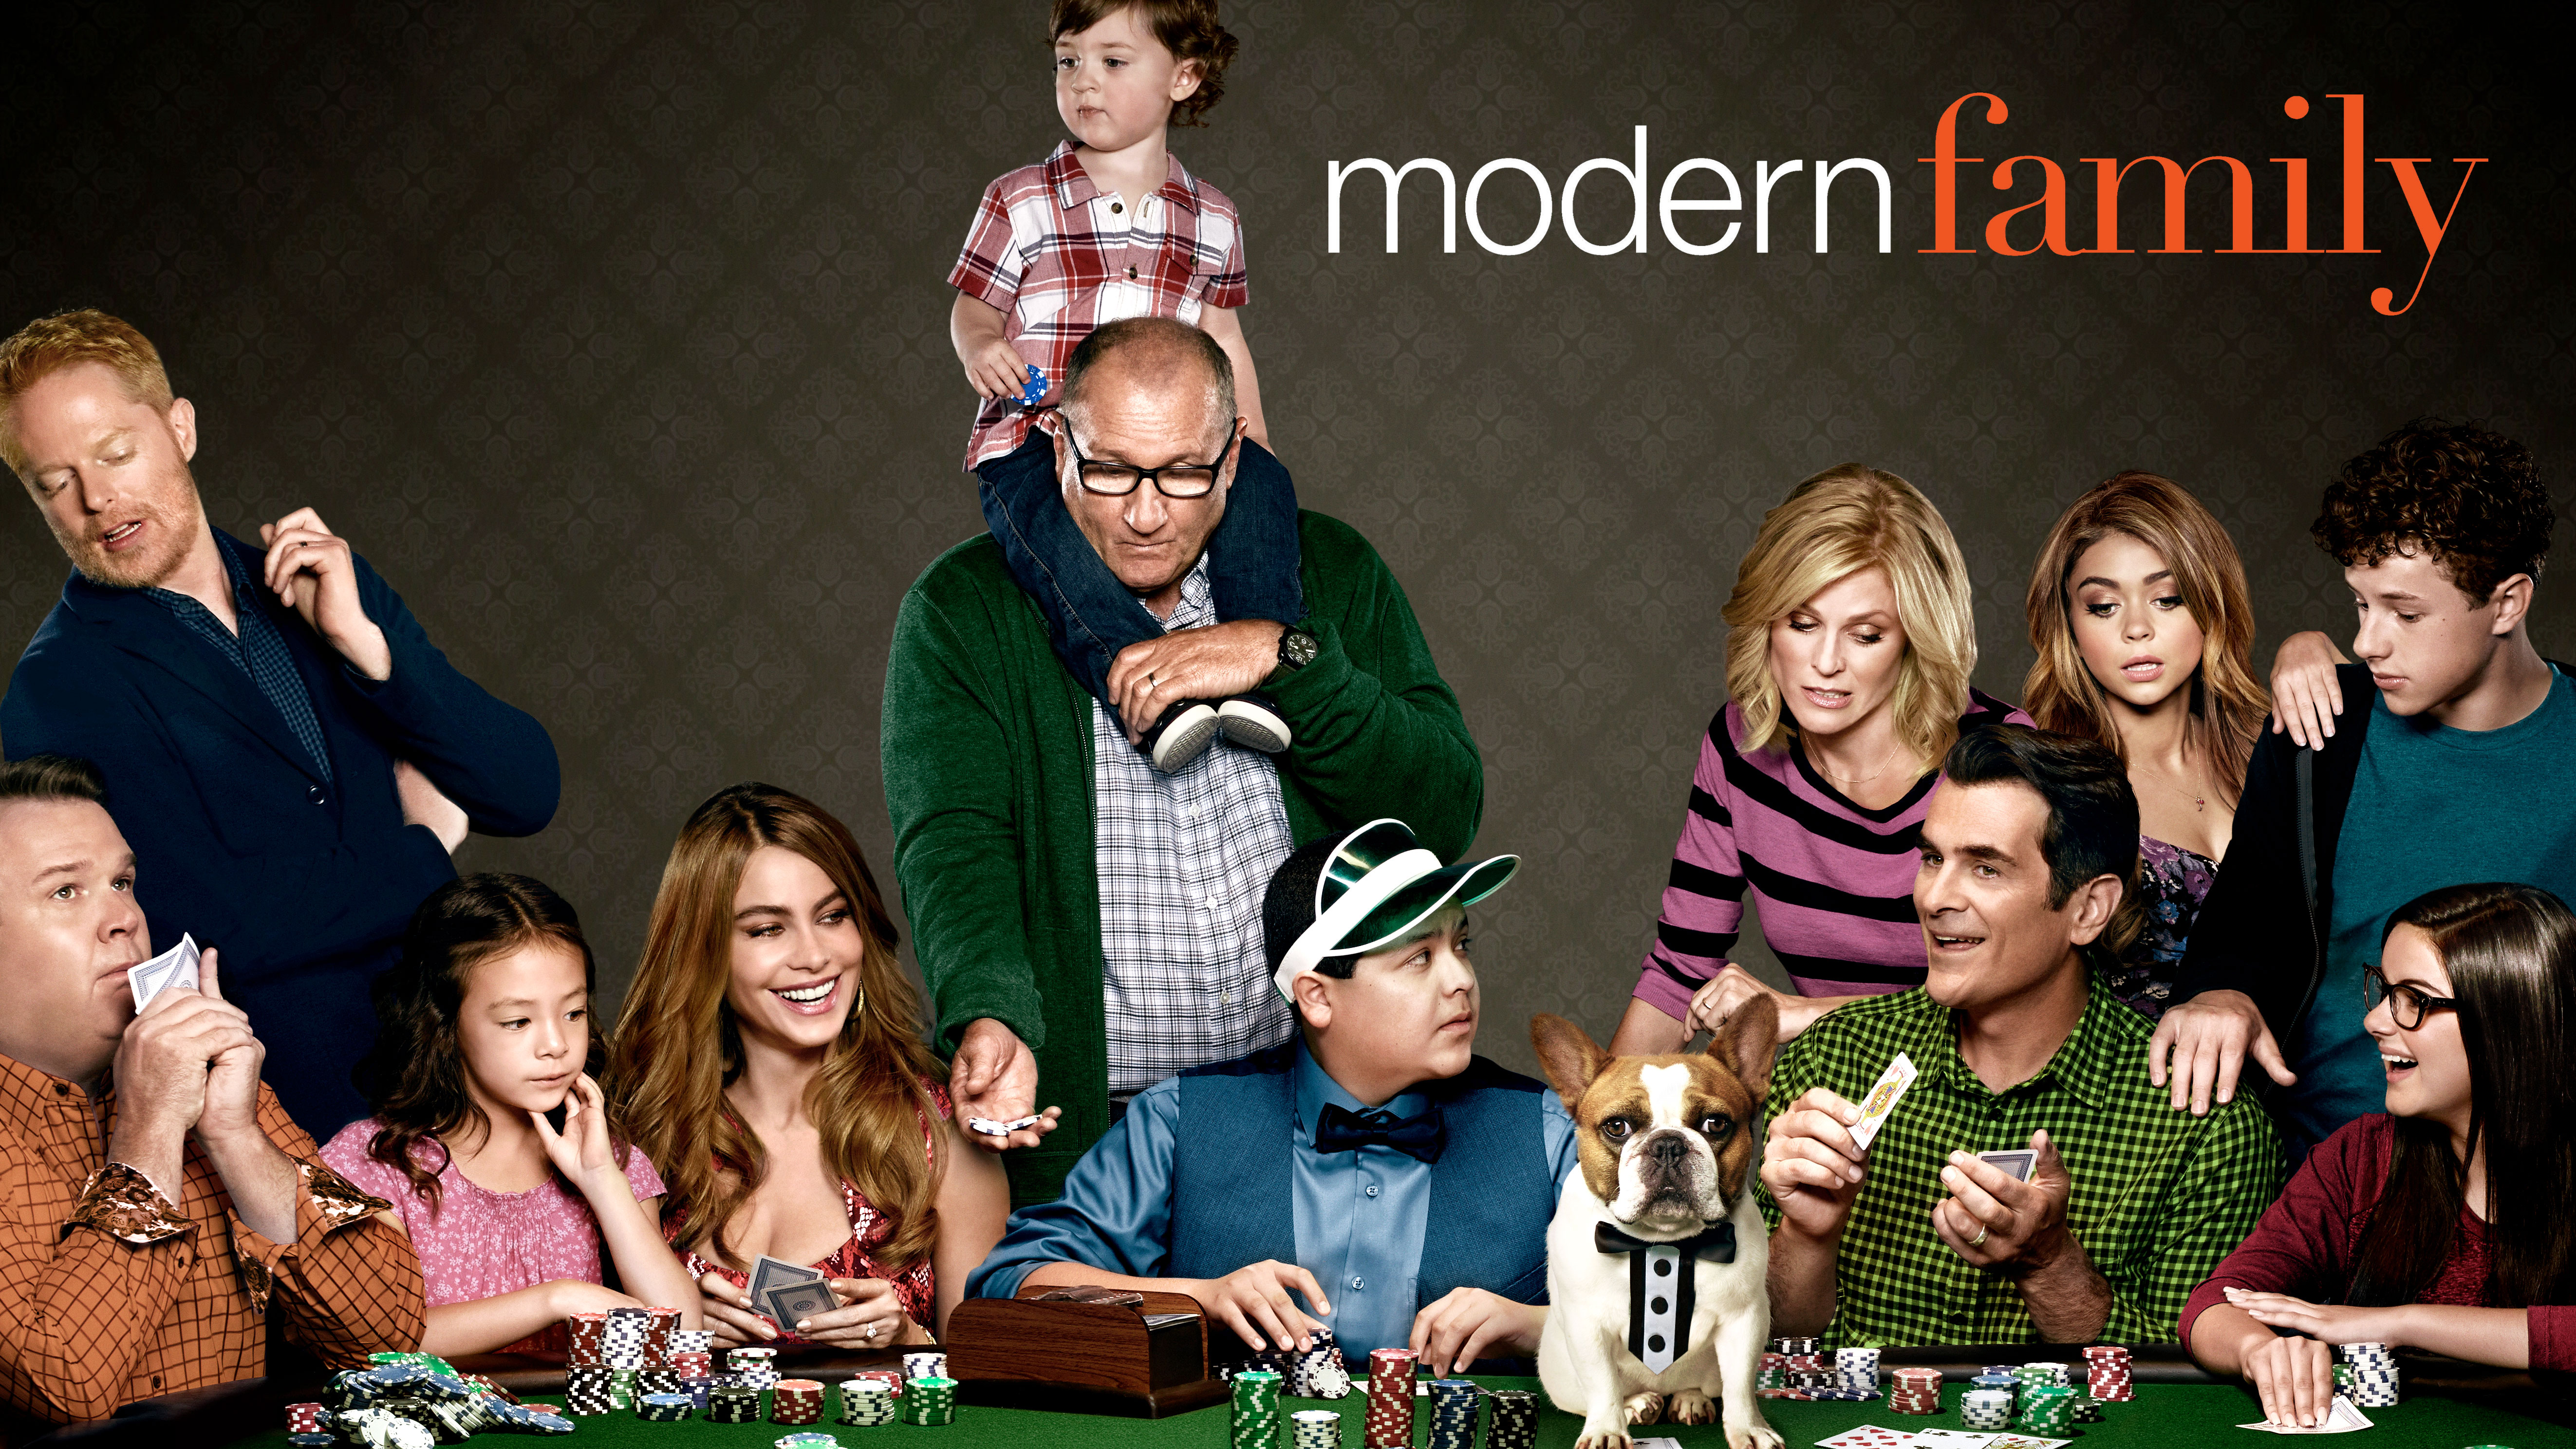 10 Inspiring Modern Family Quotes To Motivate You Today